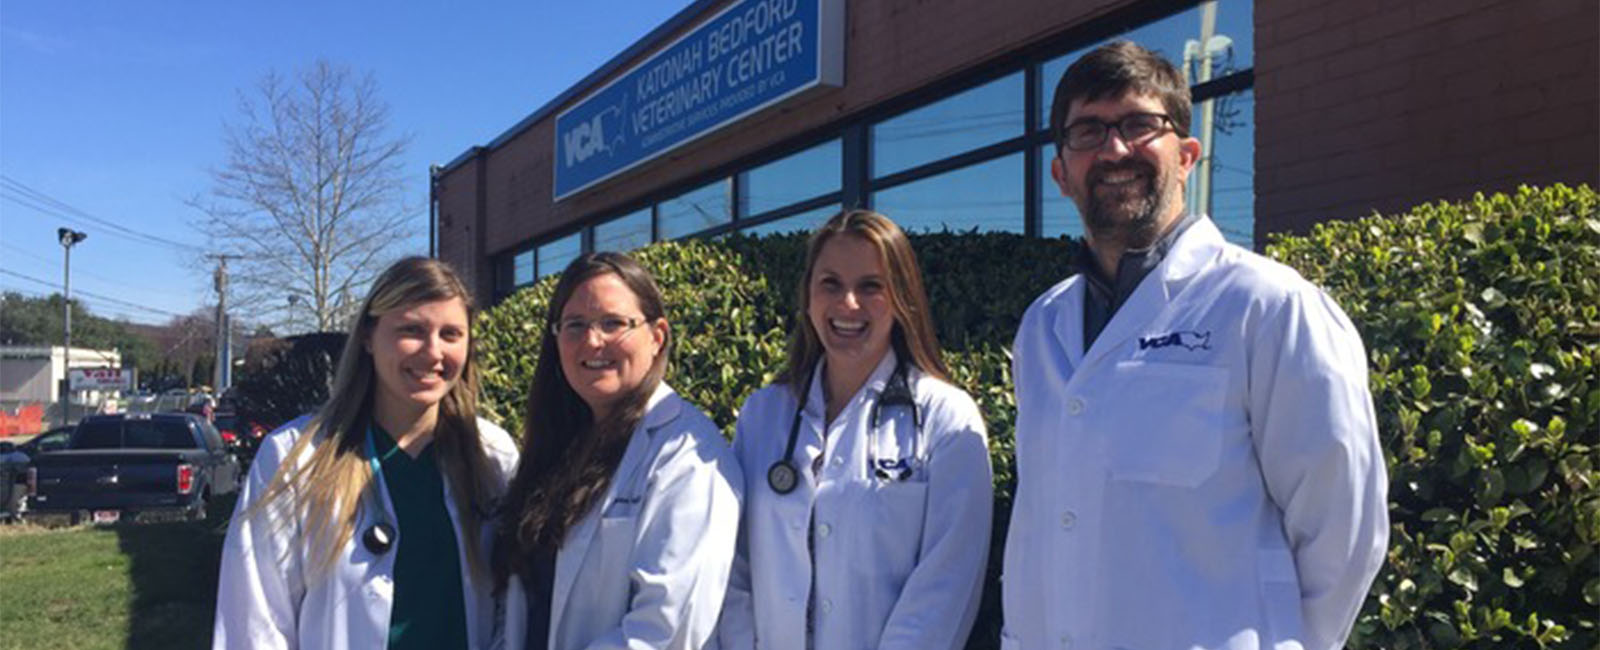 Homepage Team Picture of VCA Katonah Bedford Veterinary Center